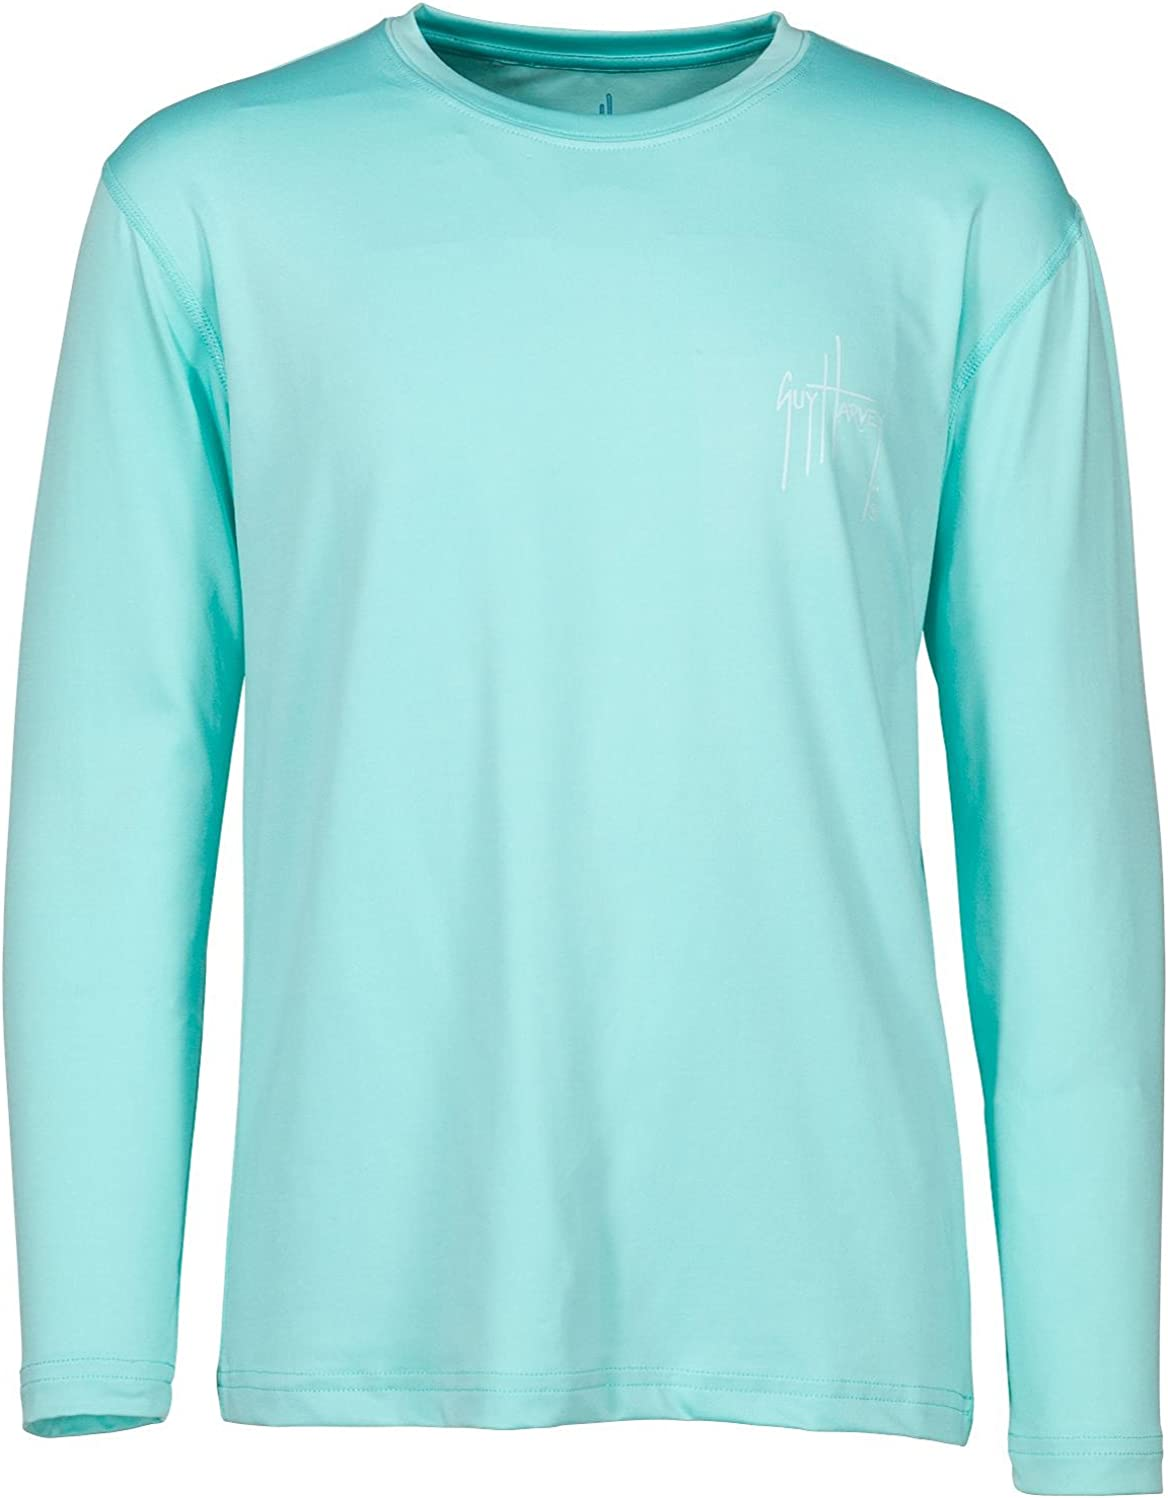 Guy Harvey Boys Chain Shot Long Sleeve Performance Shirt